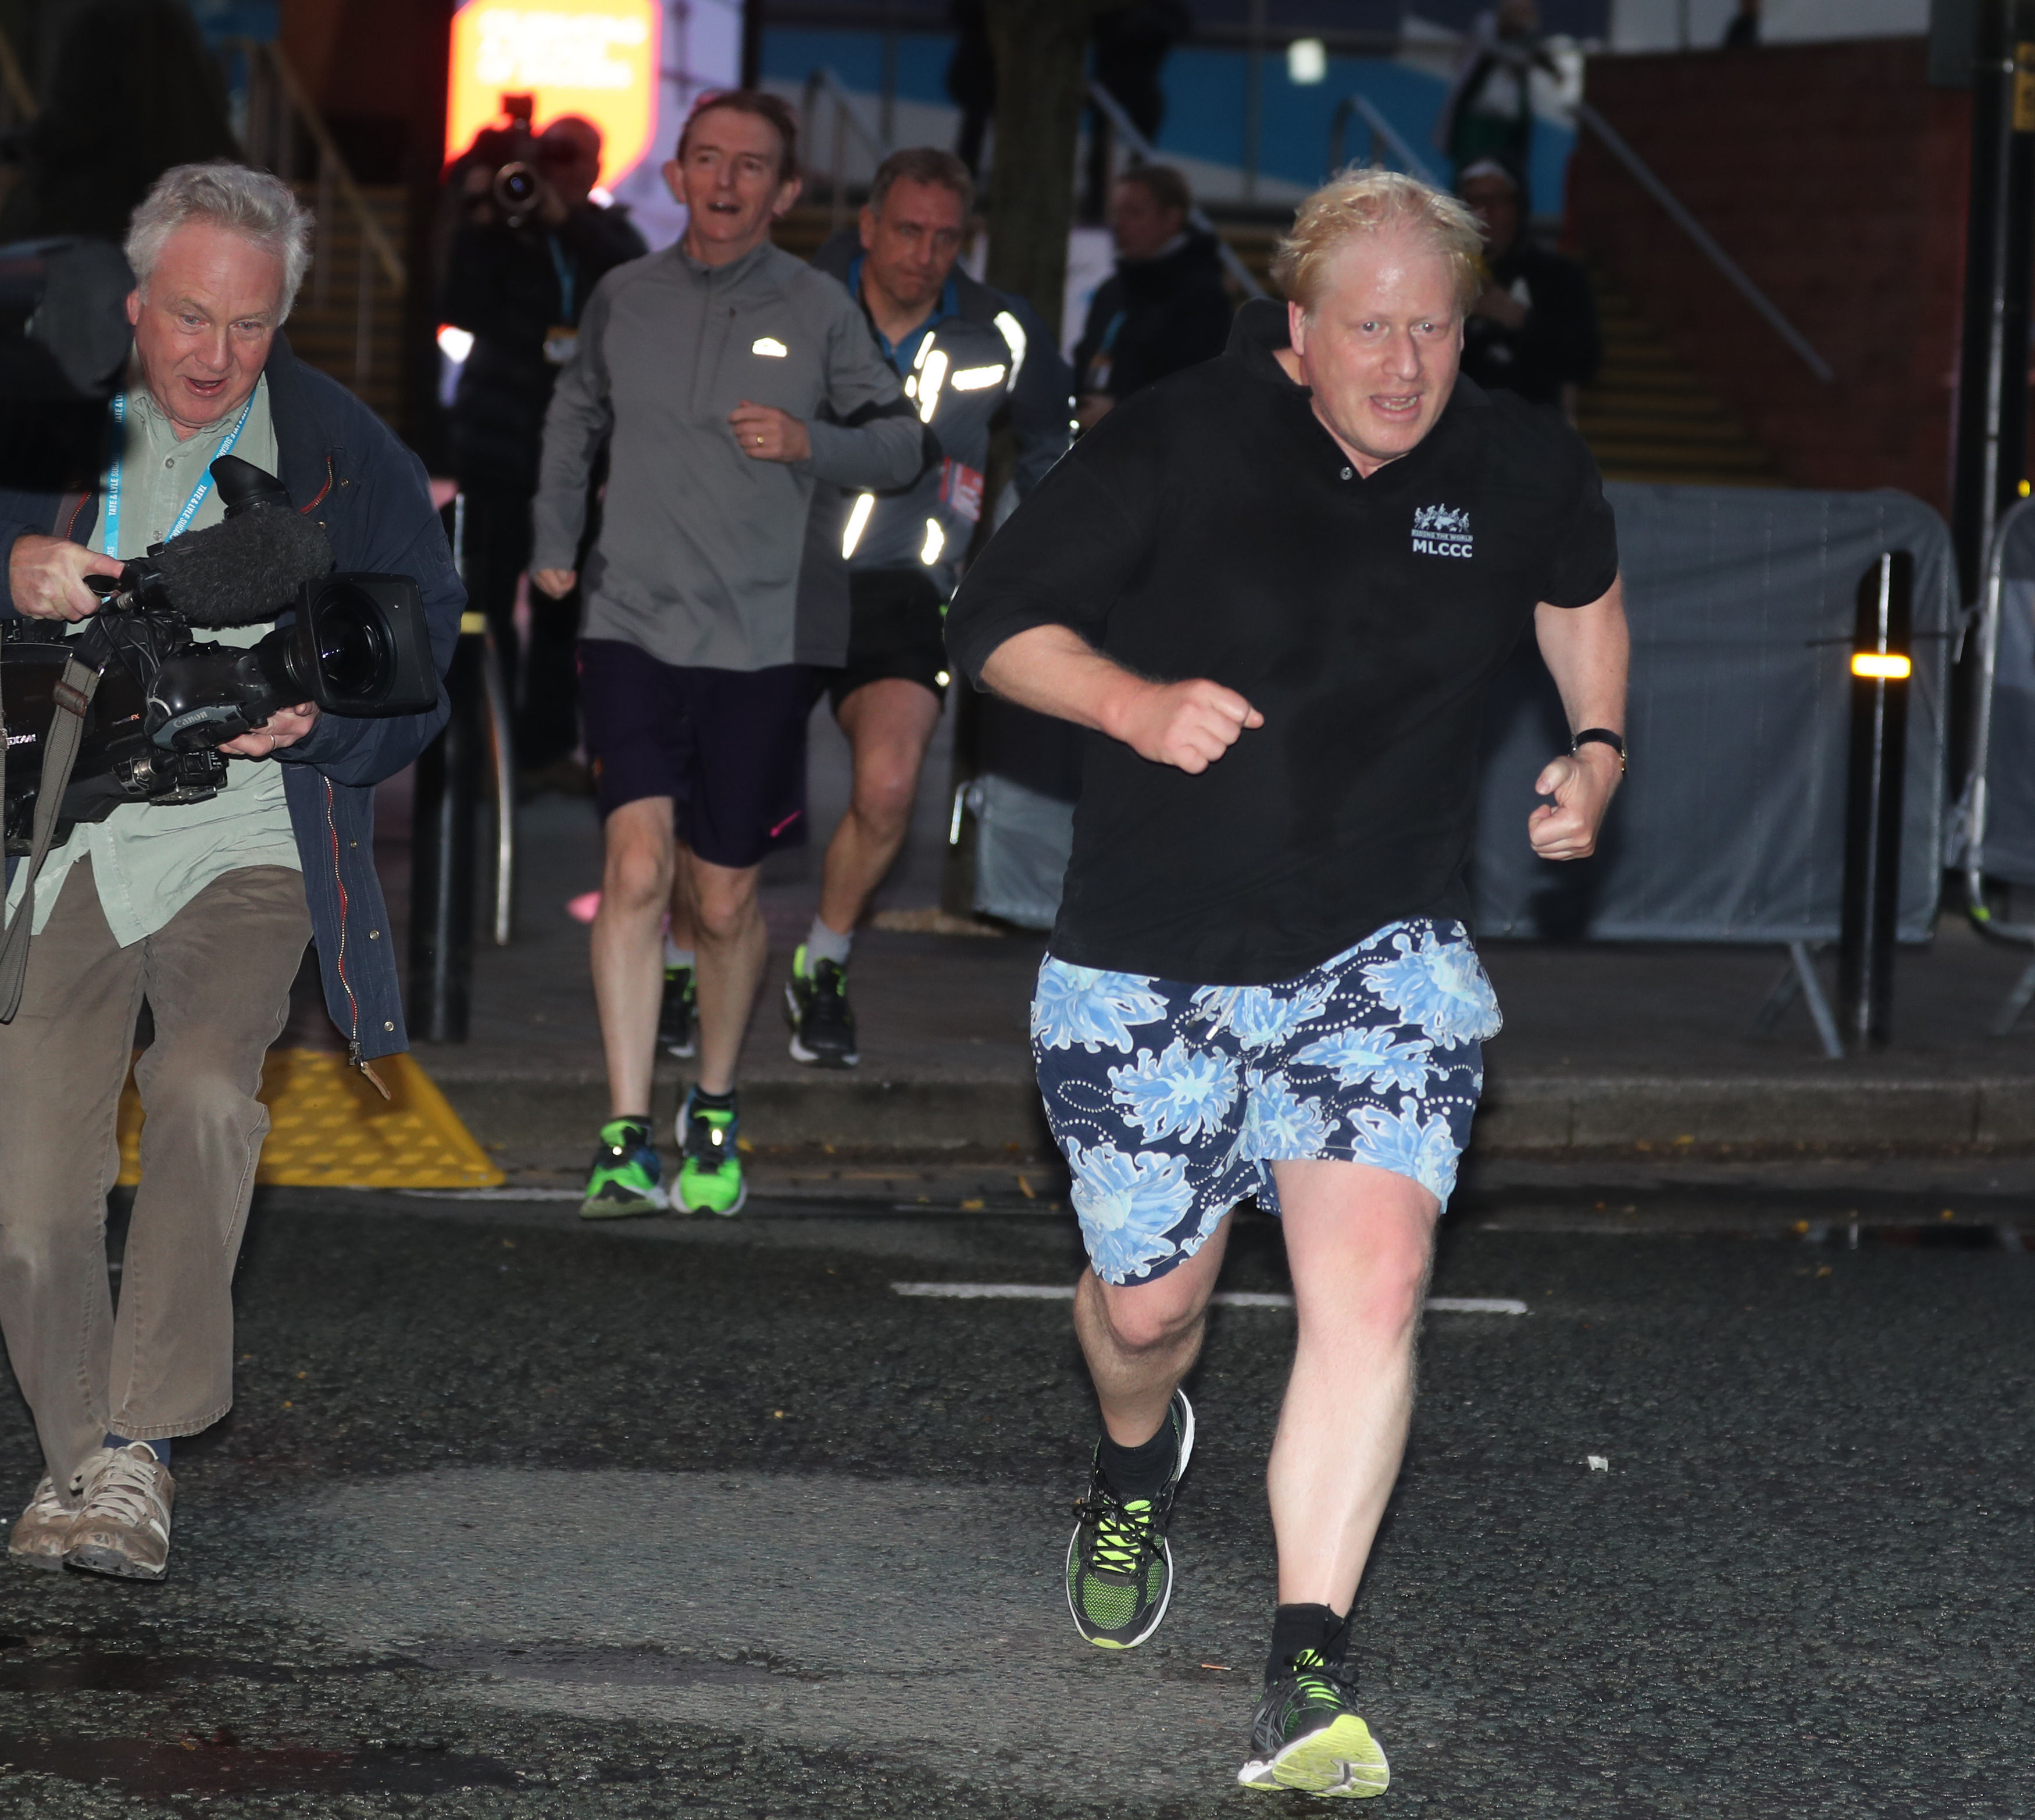 Foreign Secretary Boris Johnson goes for an early morning run during the Conservative Party Conference in Manchester.